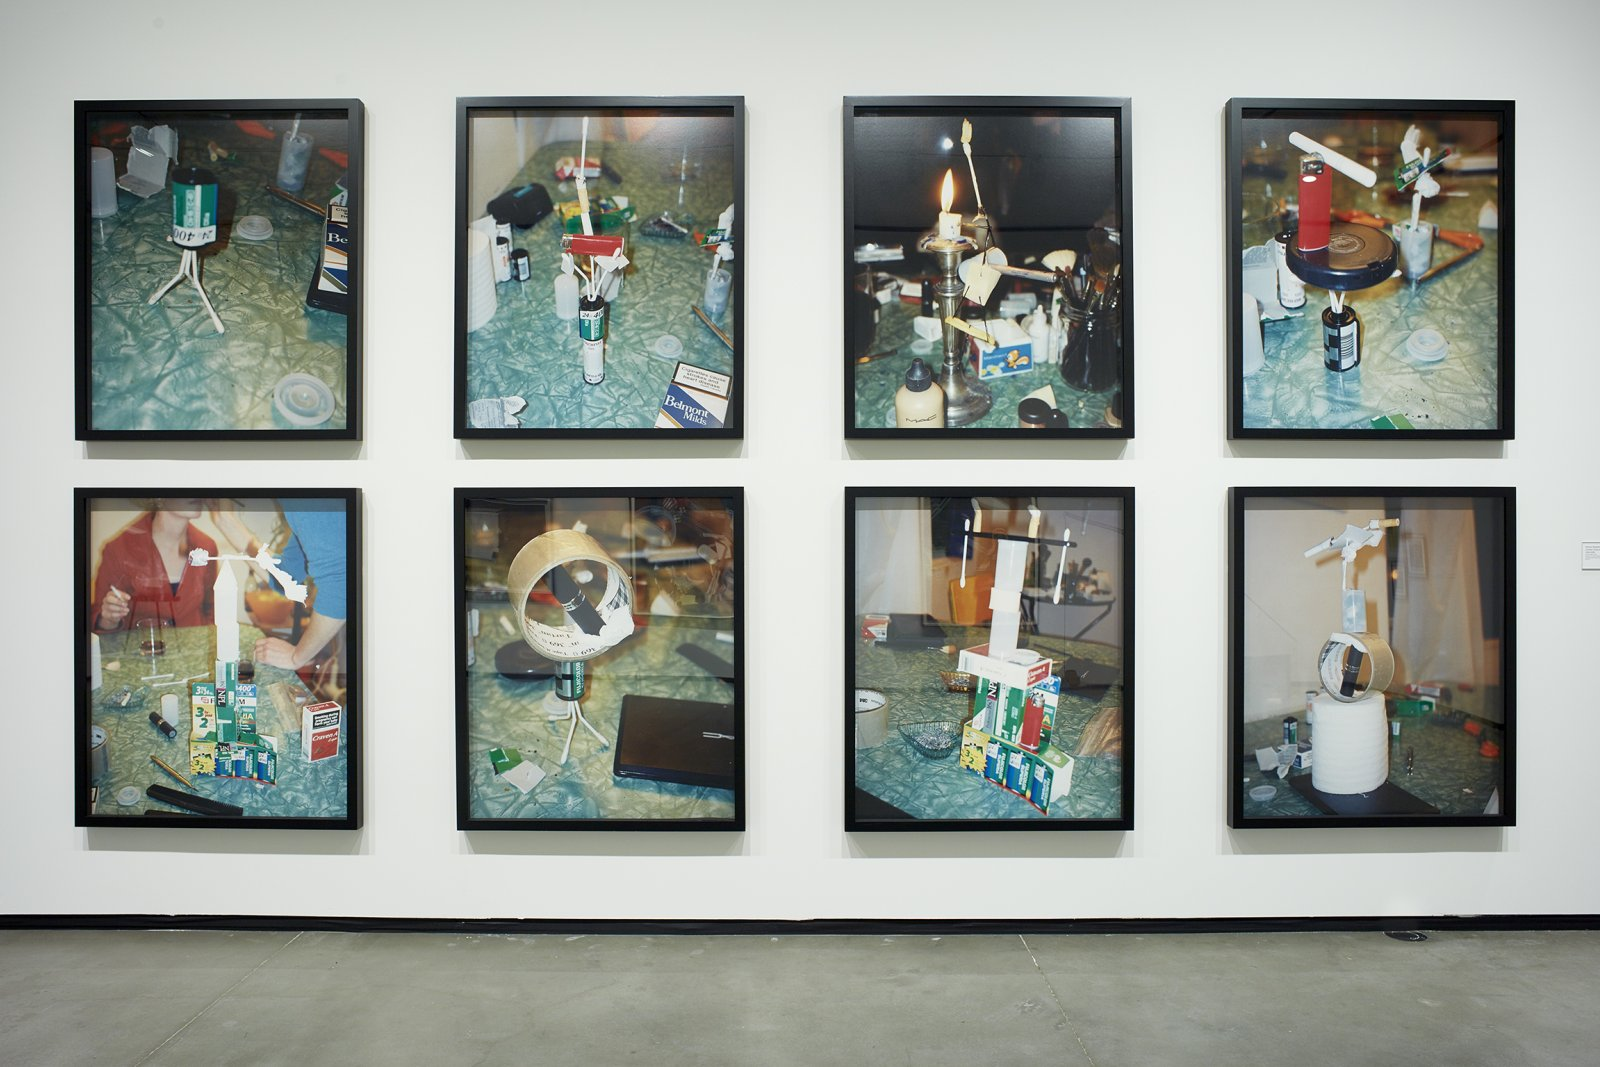 Damian Moppett, installation view, (Untitled) Impure Systems, 1999, c-print, each 48 x 40 in. (122 x 102 cm) by Damian Moppett